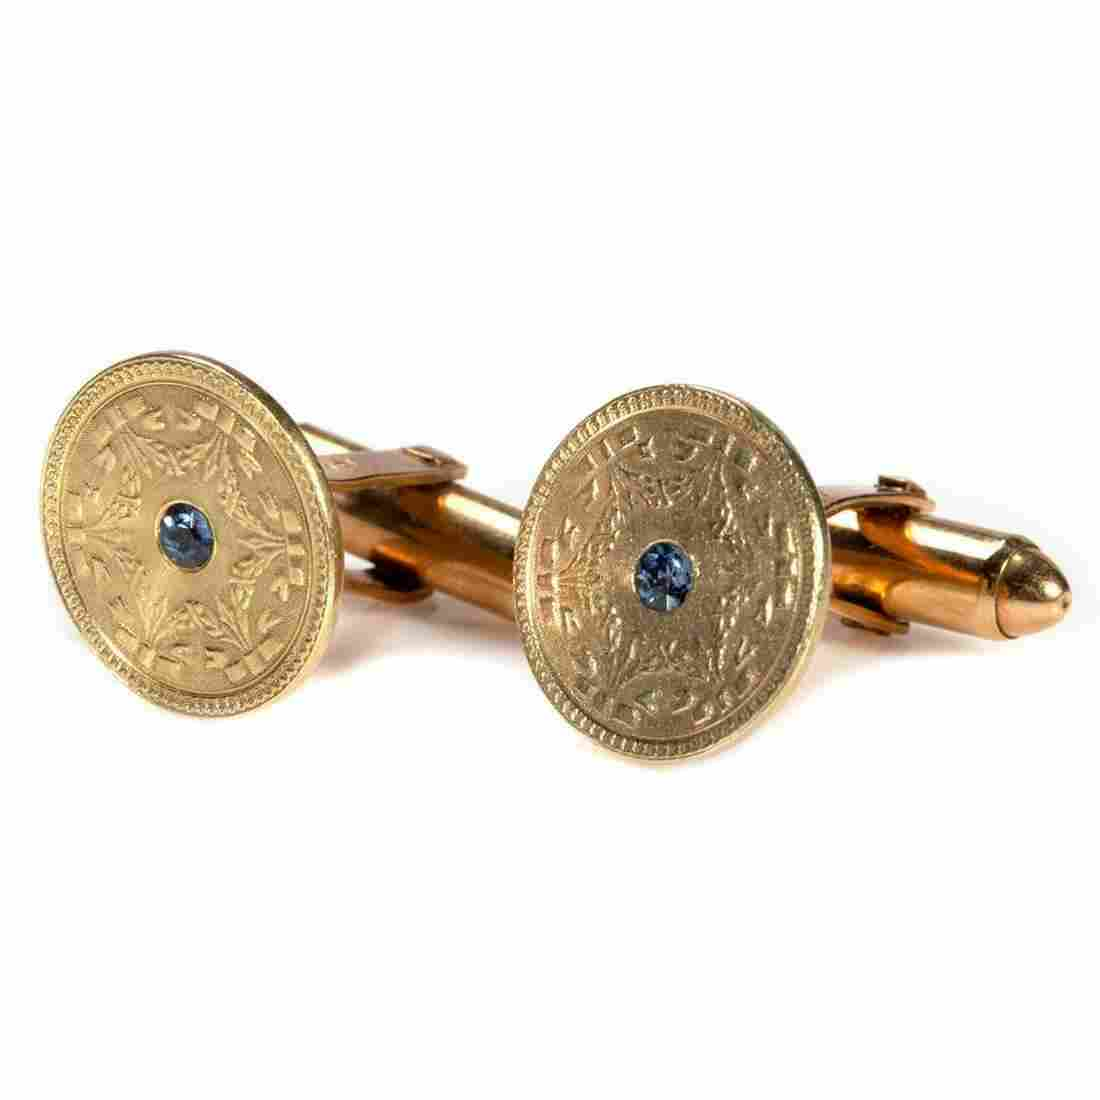 Pair of vintage sapphire and 14k gold cufflinks